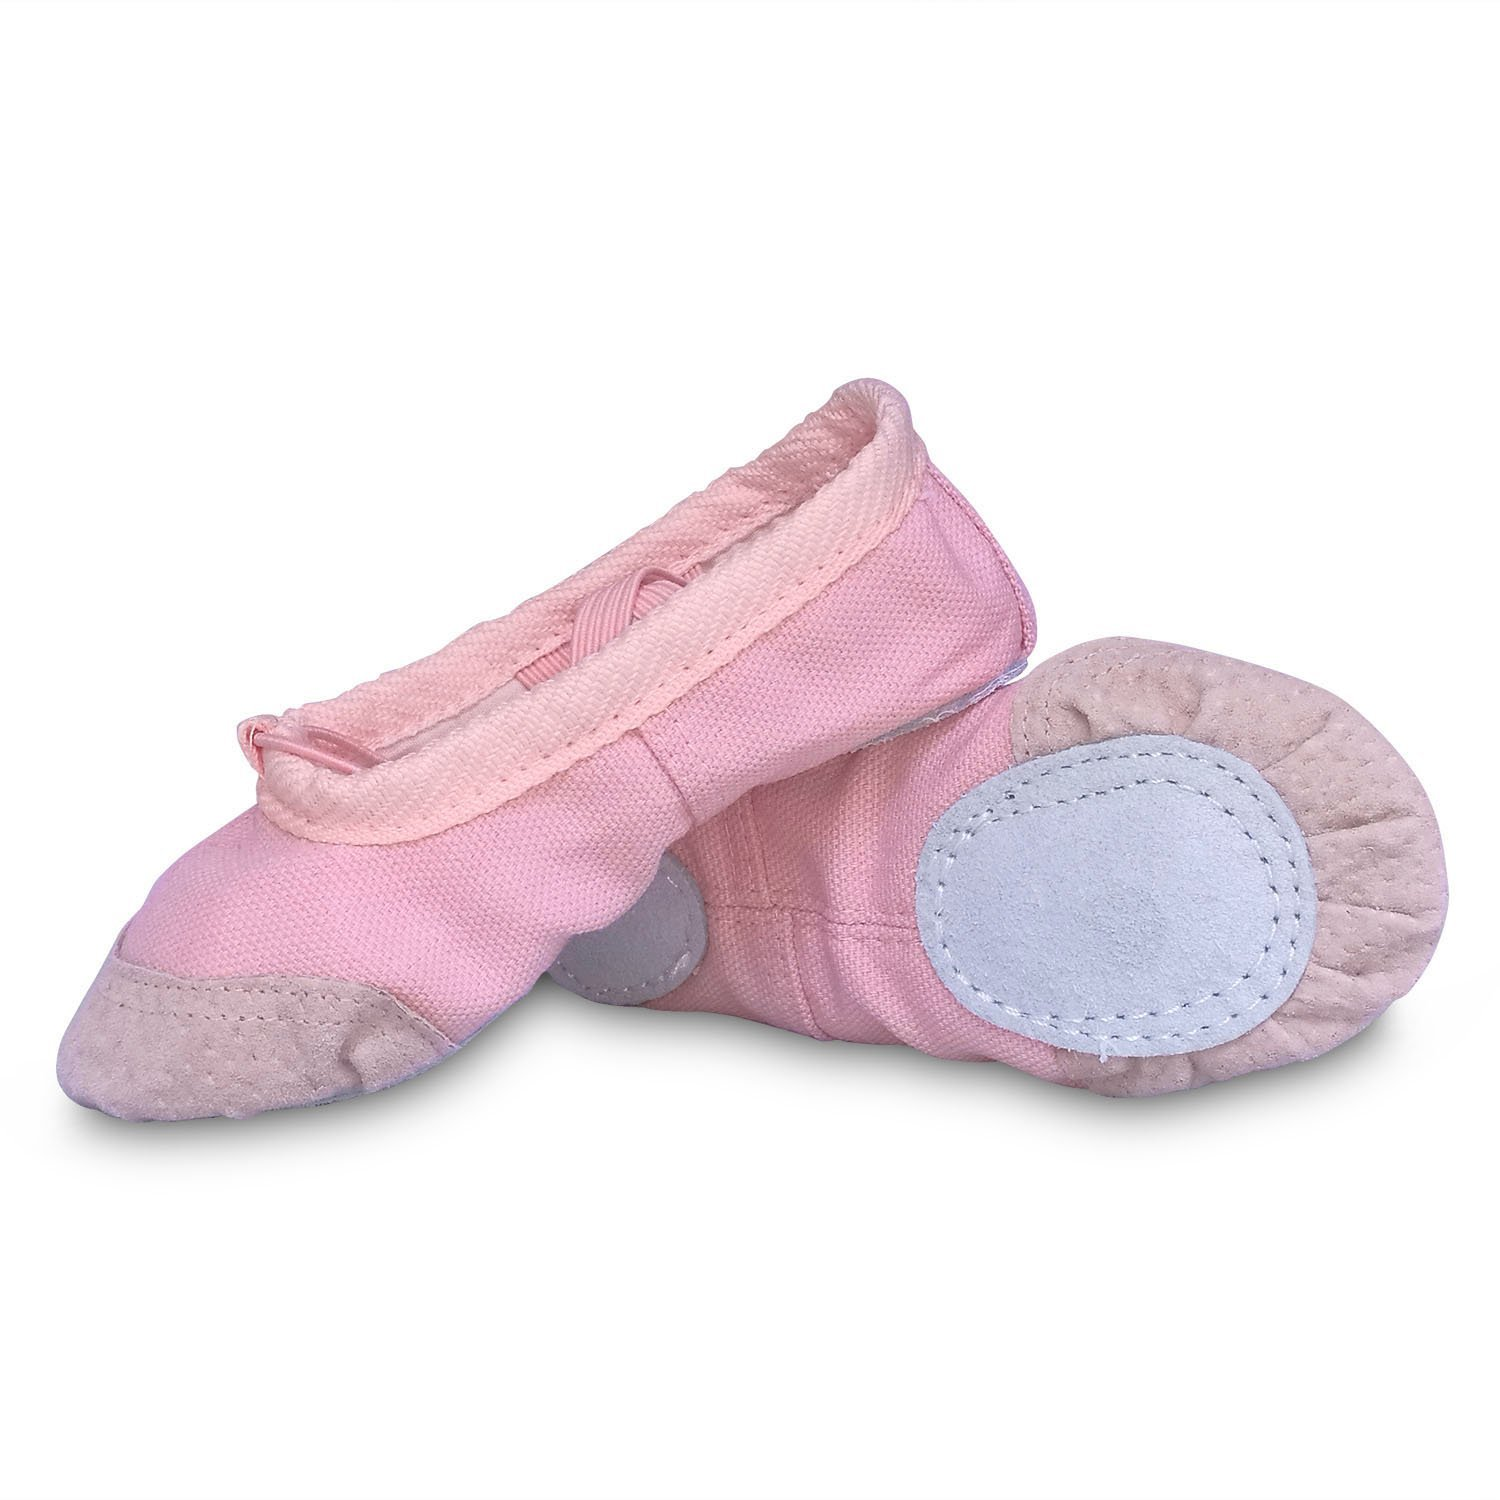 cd47c48a14bc Get Quotations · Ballet Slipper Shoes Pointe Canvas Split Sole Practice Ballet  Dancing Gymnastics Shoes Ballet Flat Slipper Yoga